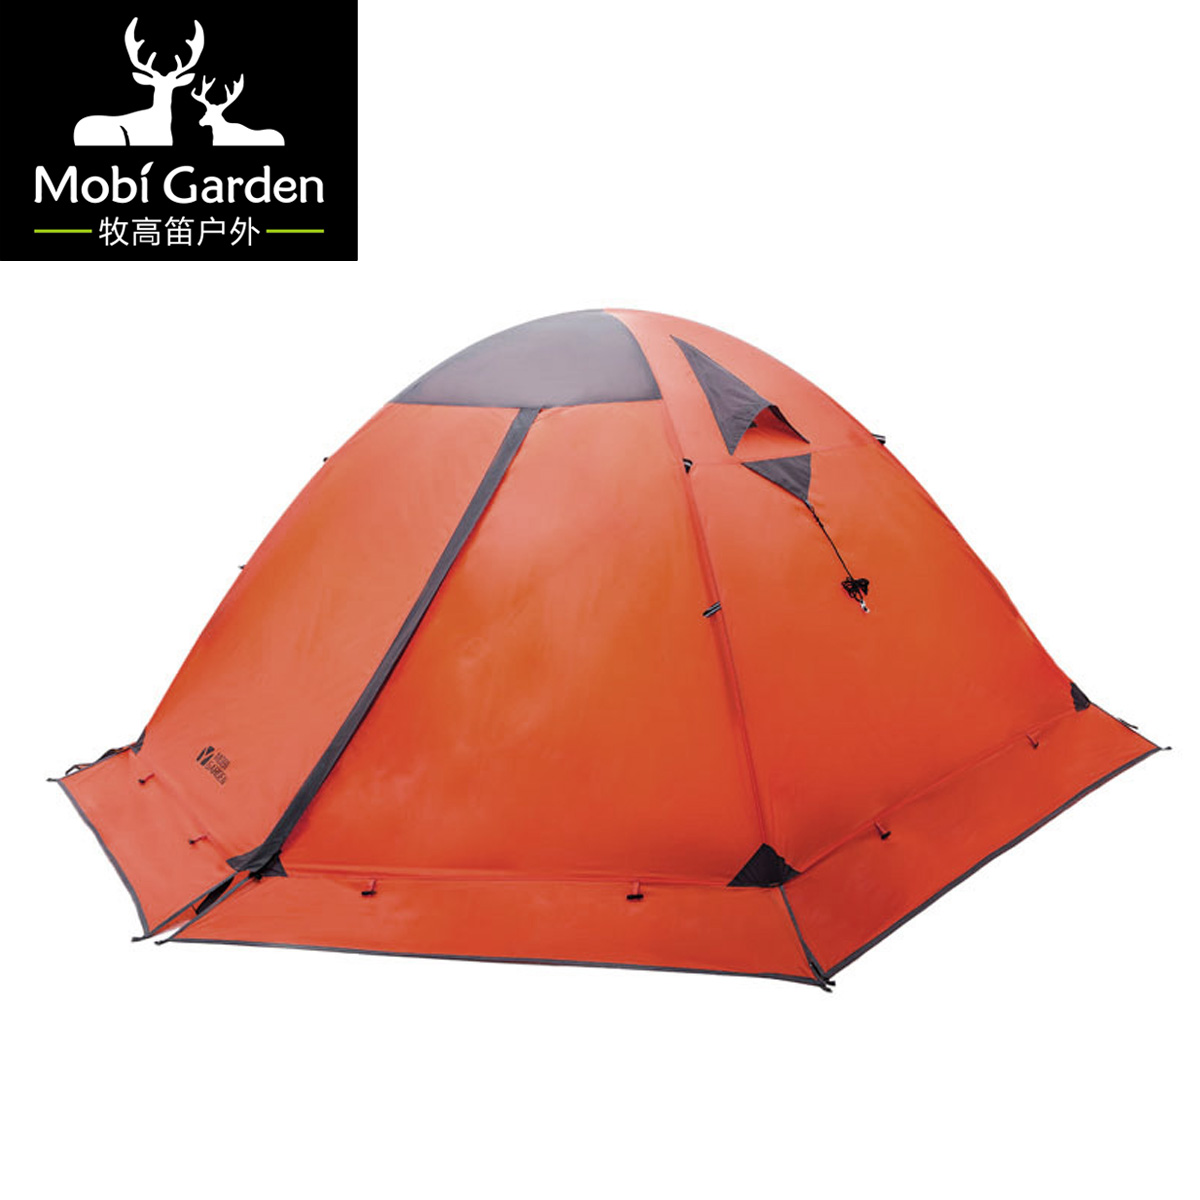 Outdoor Professional mountaineering tent classic double layer four seasons tent 2plus